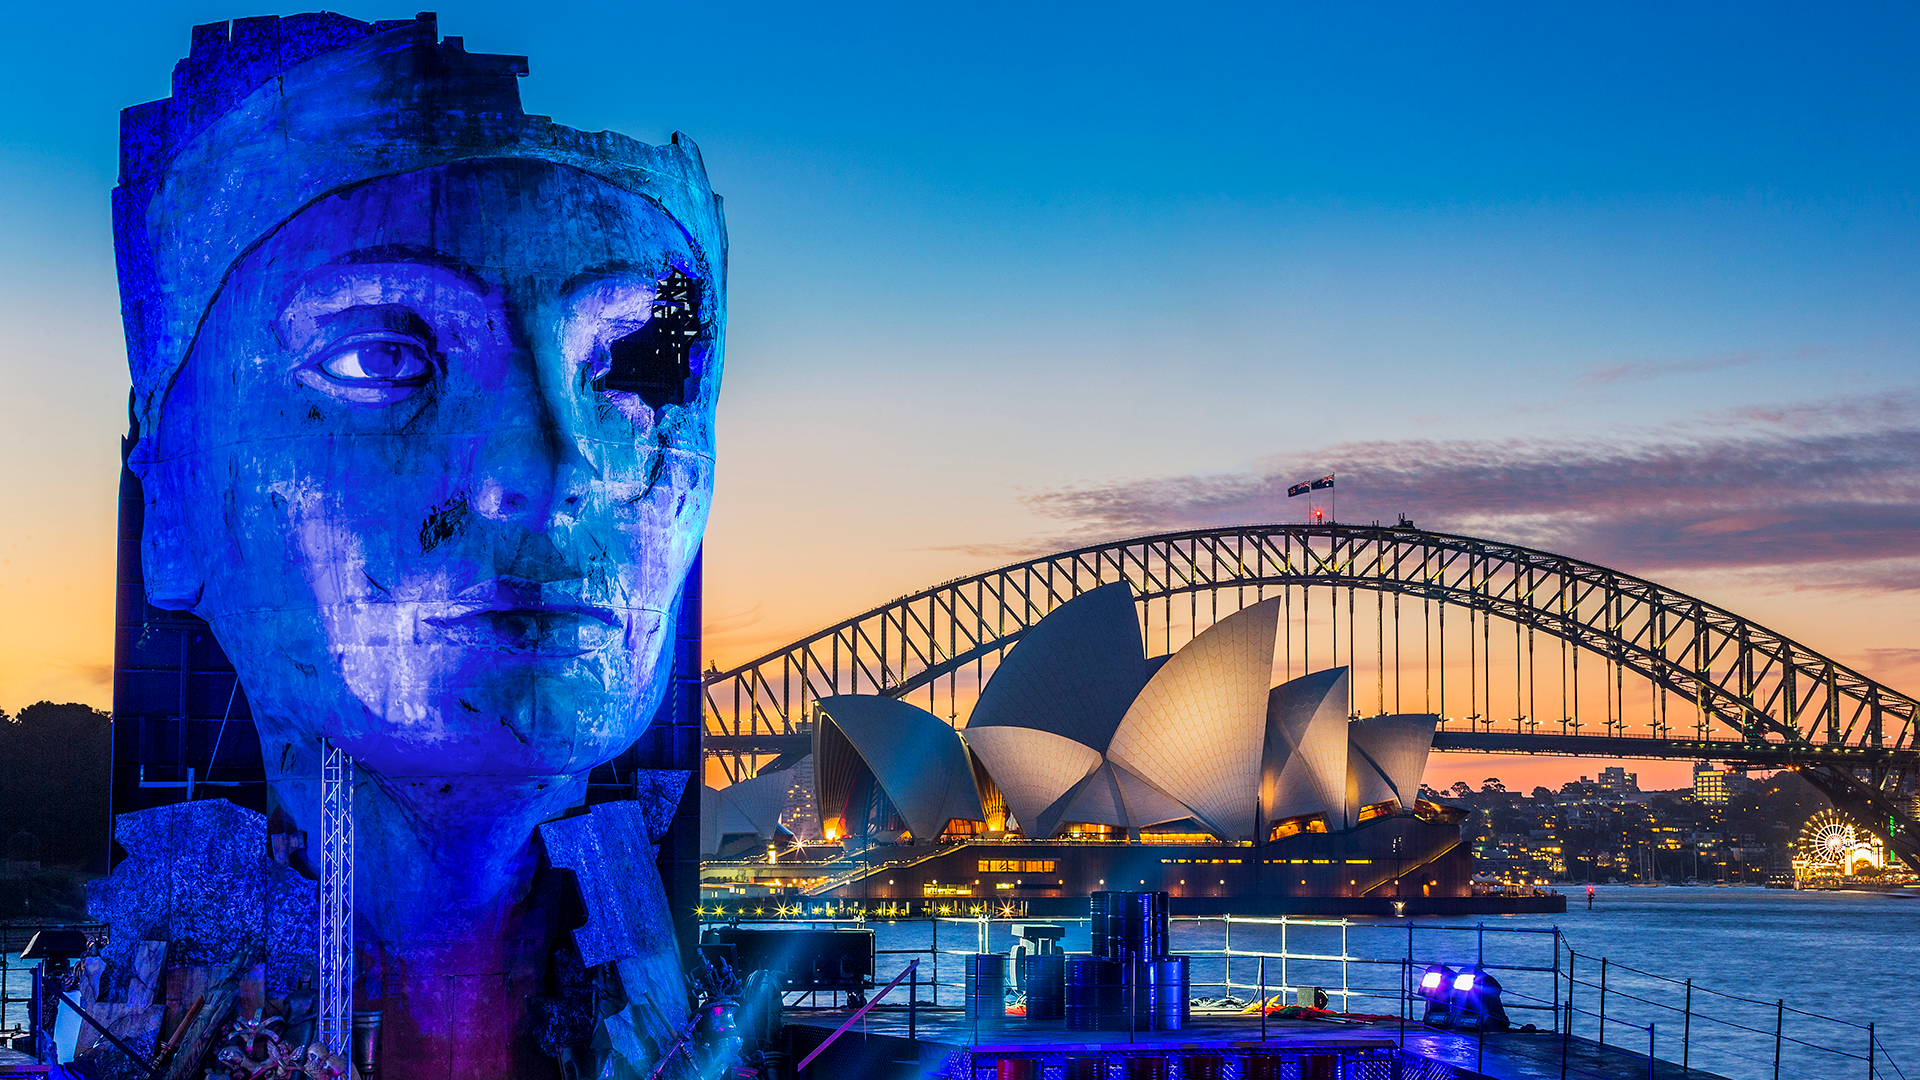 A giant bust of Egyptian queen Nefertiti stands in front of the Sydney Harbour Bridge and Opera House.